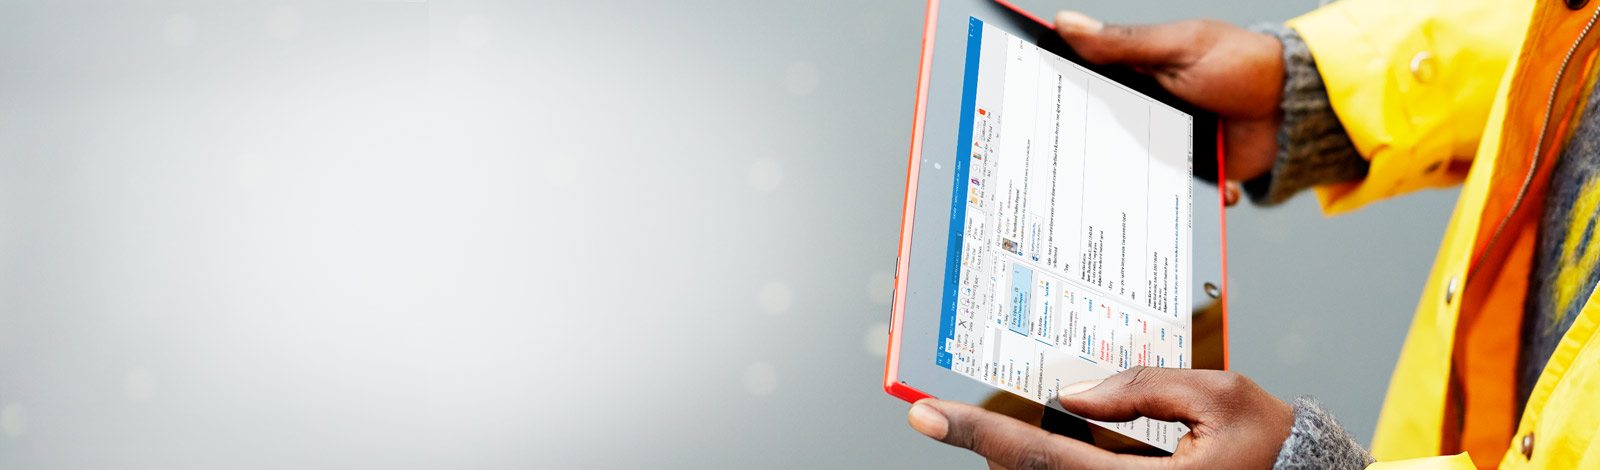 A man holding a tablet in his hands. With Office 365 you can work anywhere.